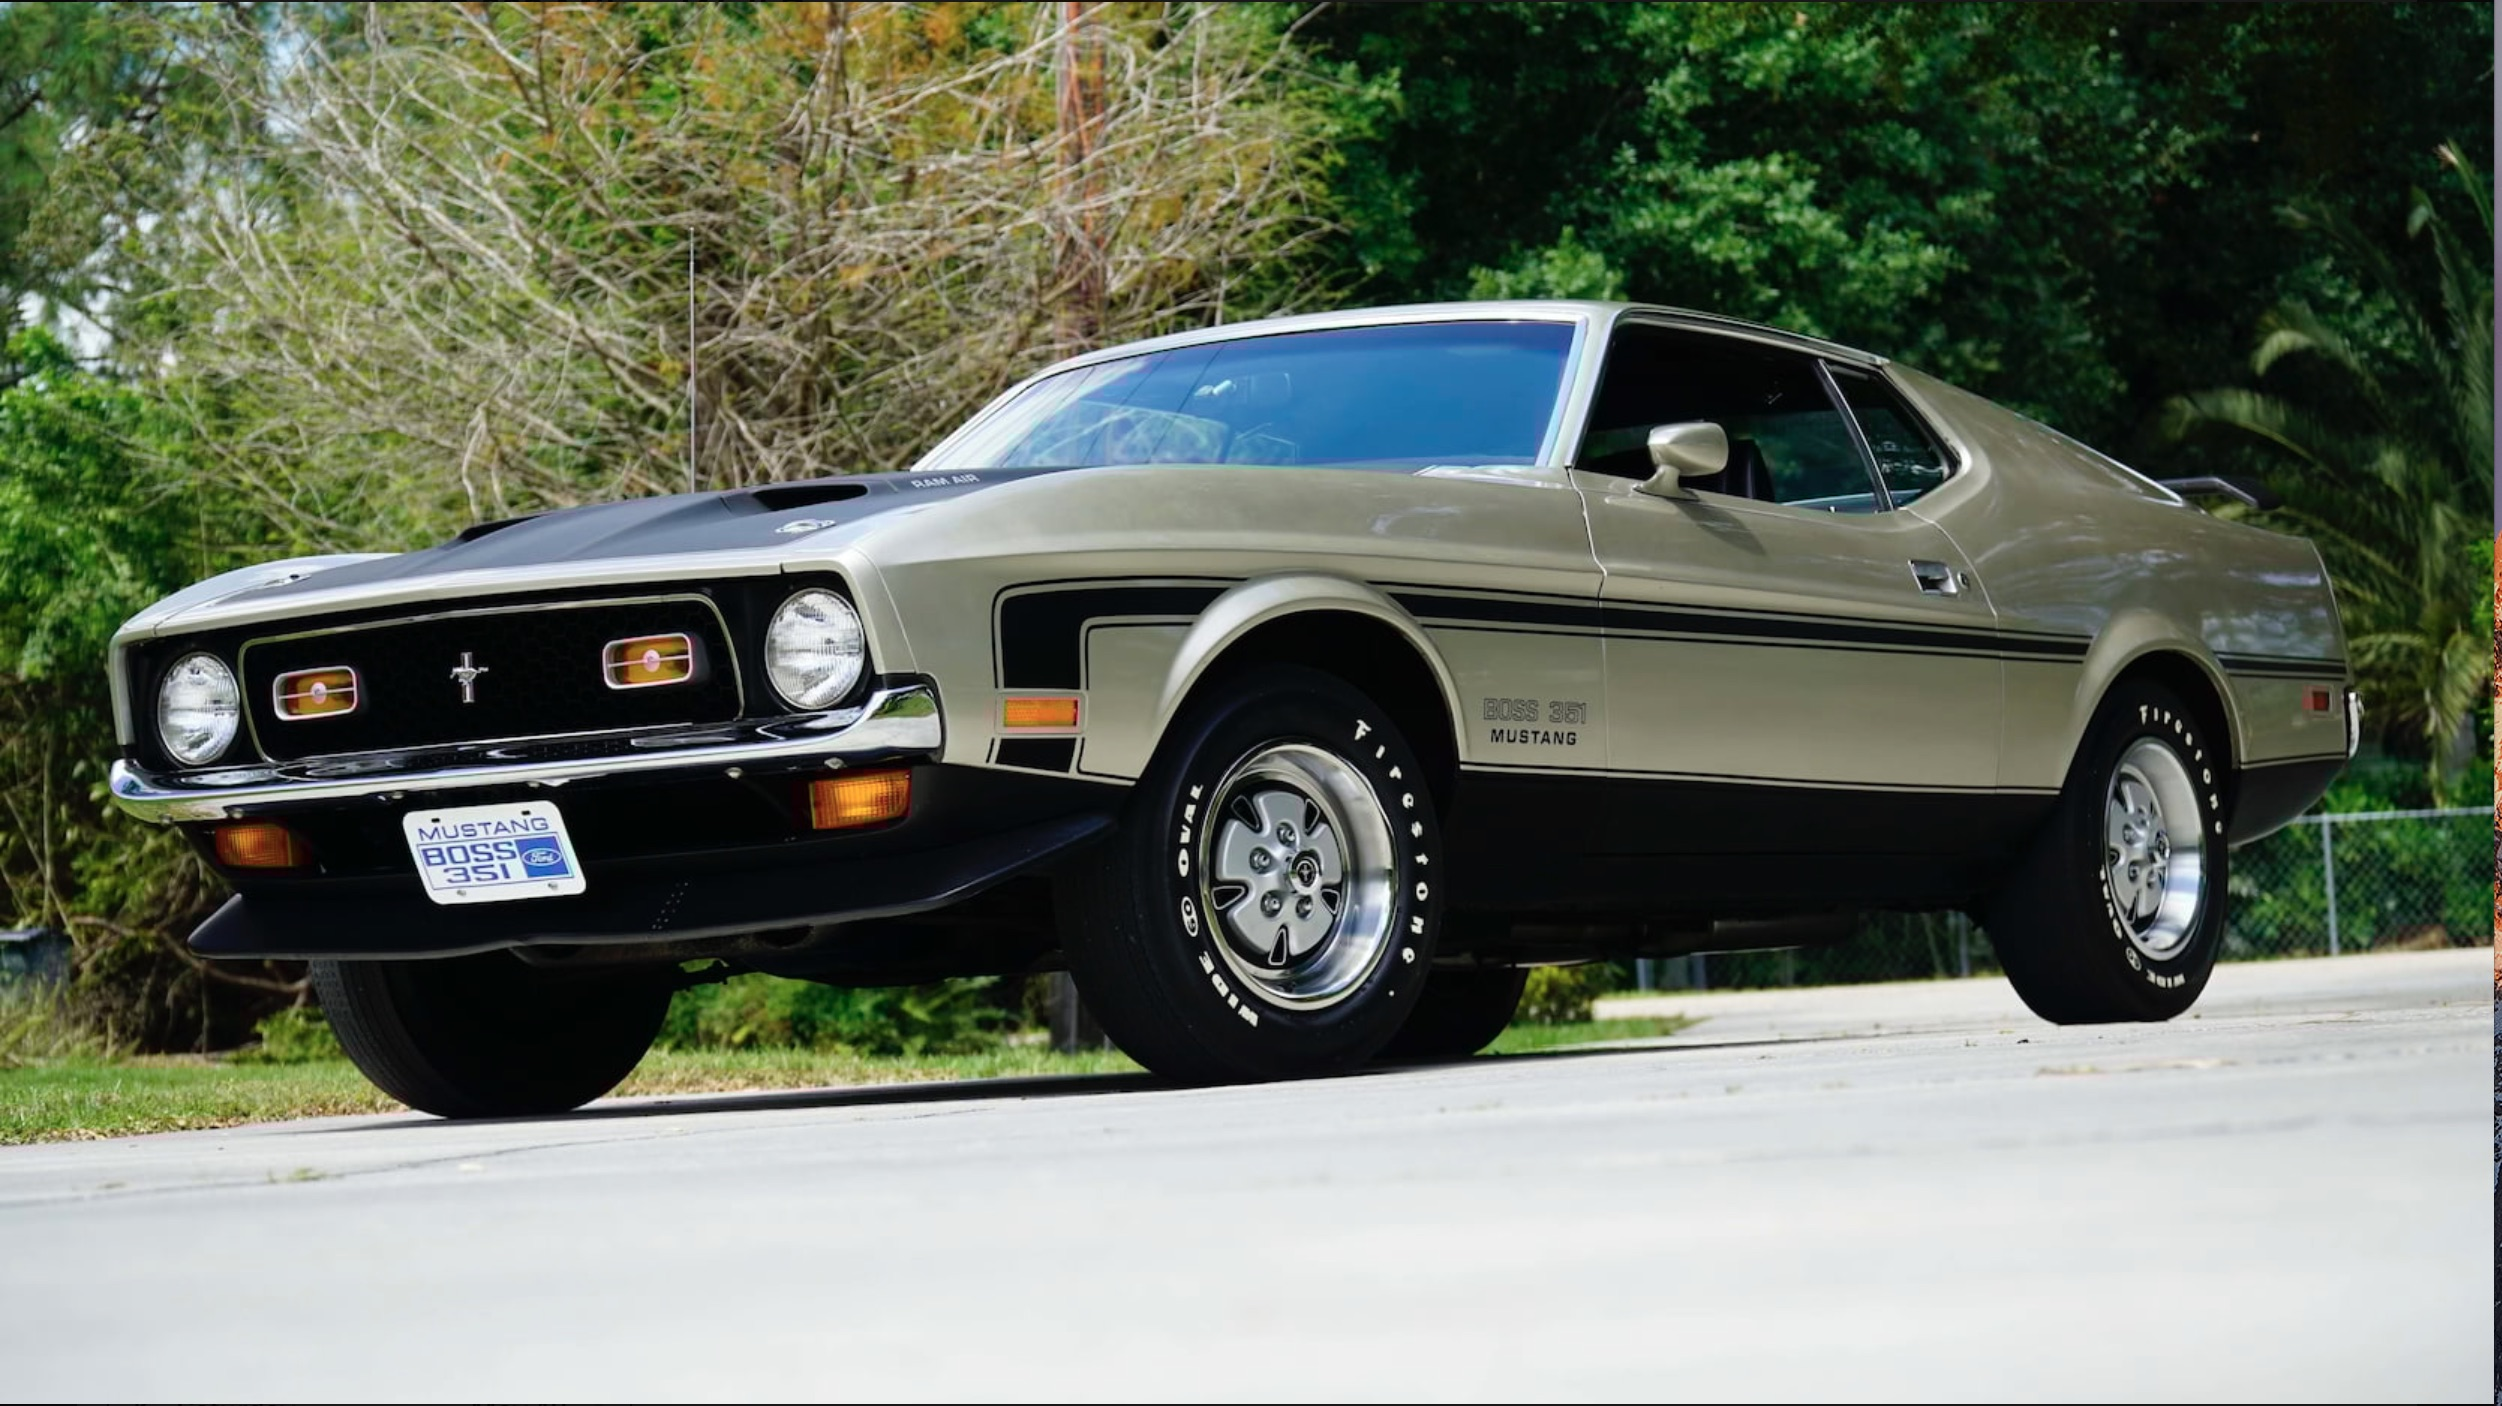 Monday Shopper: 1971 Ford Mustang Boss 351 – When You Want To Mess With Everyone's Head!